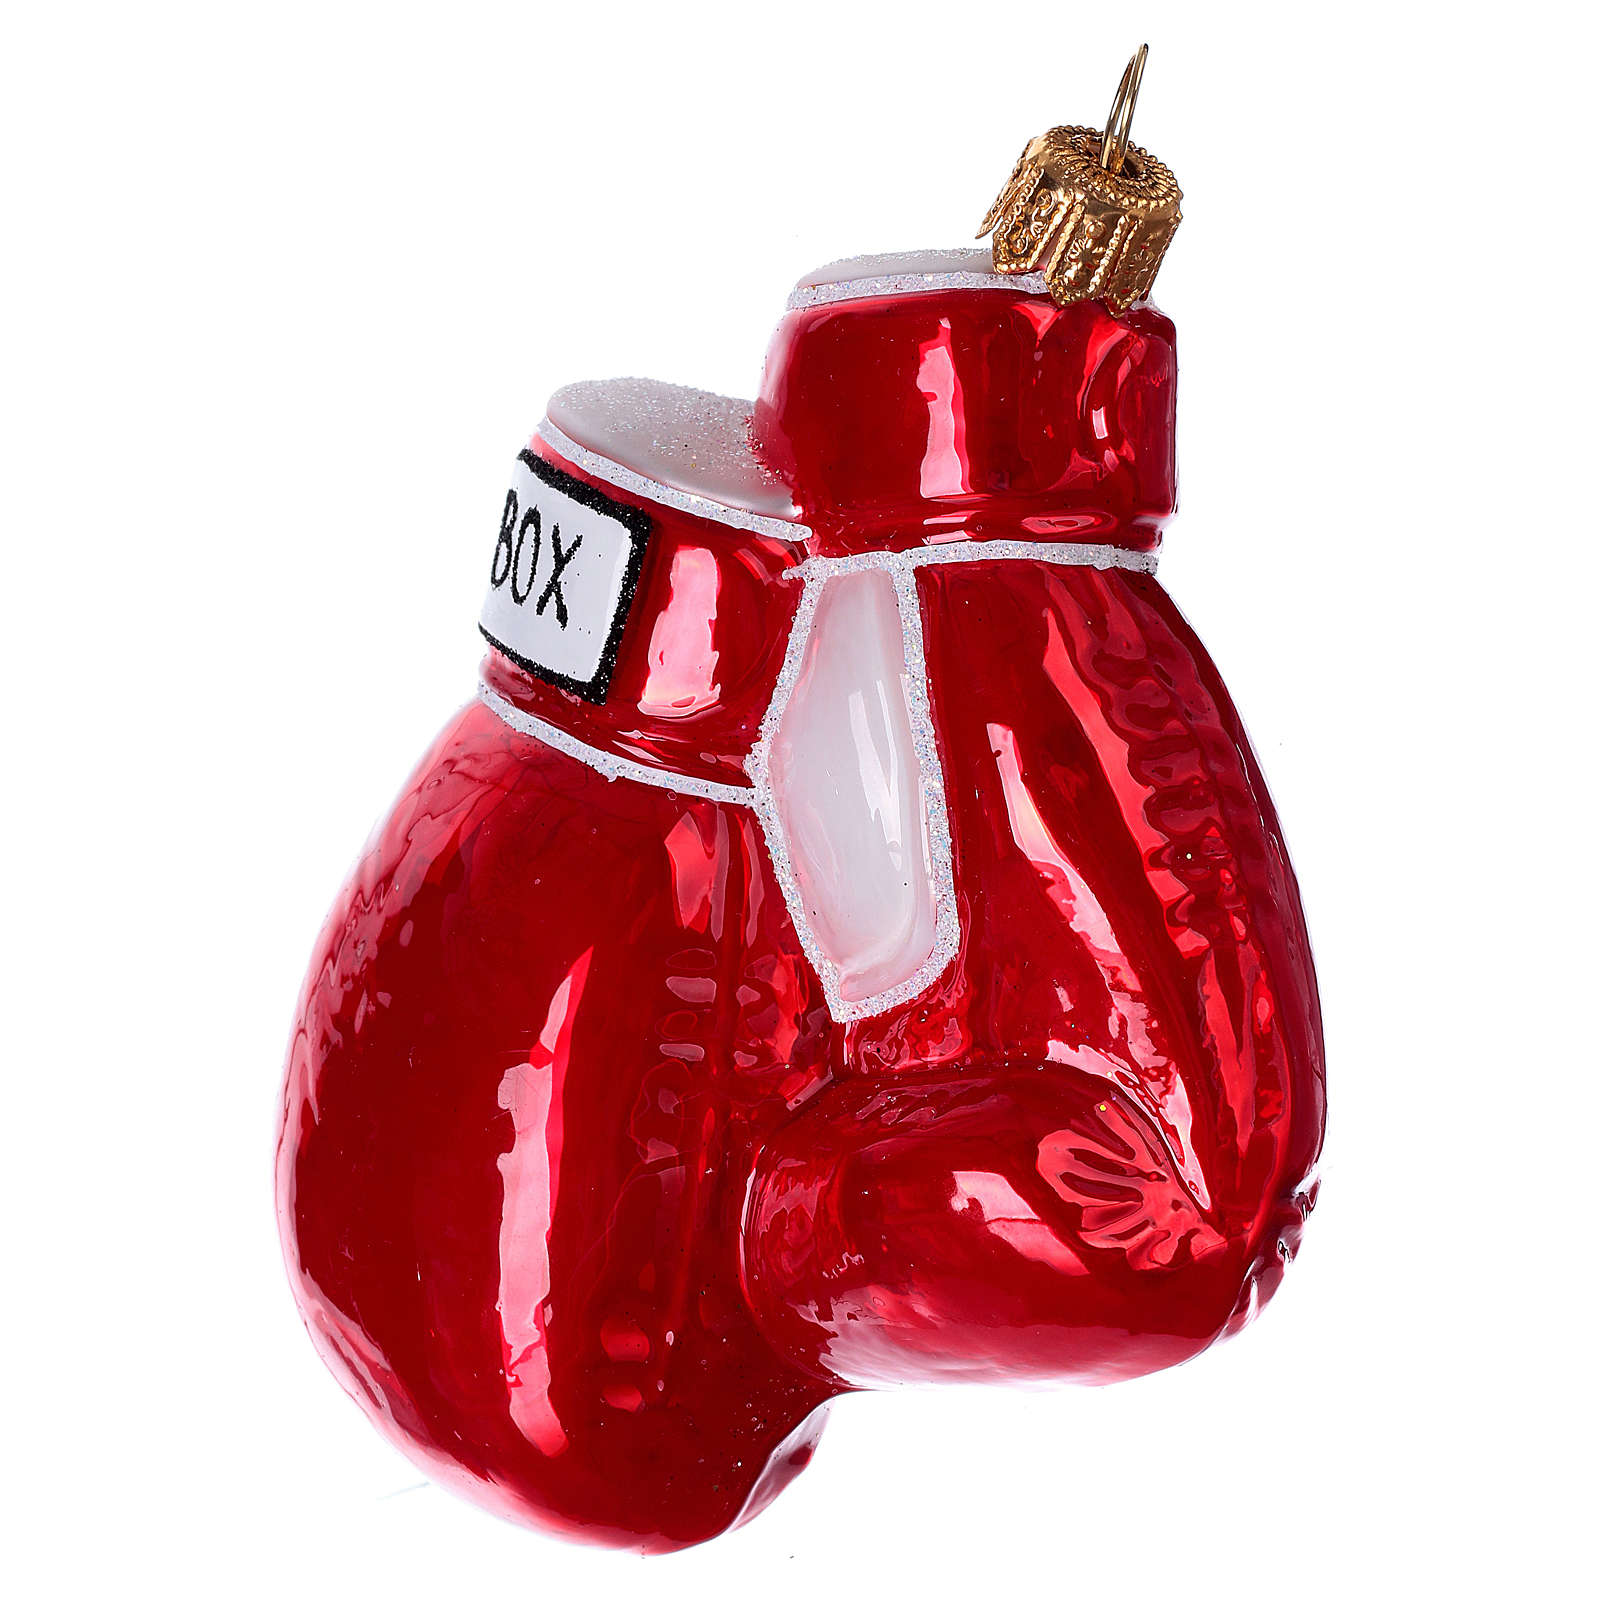 Blown glass Christmas ornament, boxing gloves 4